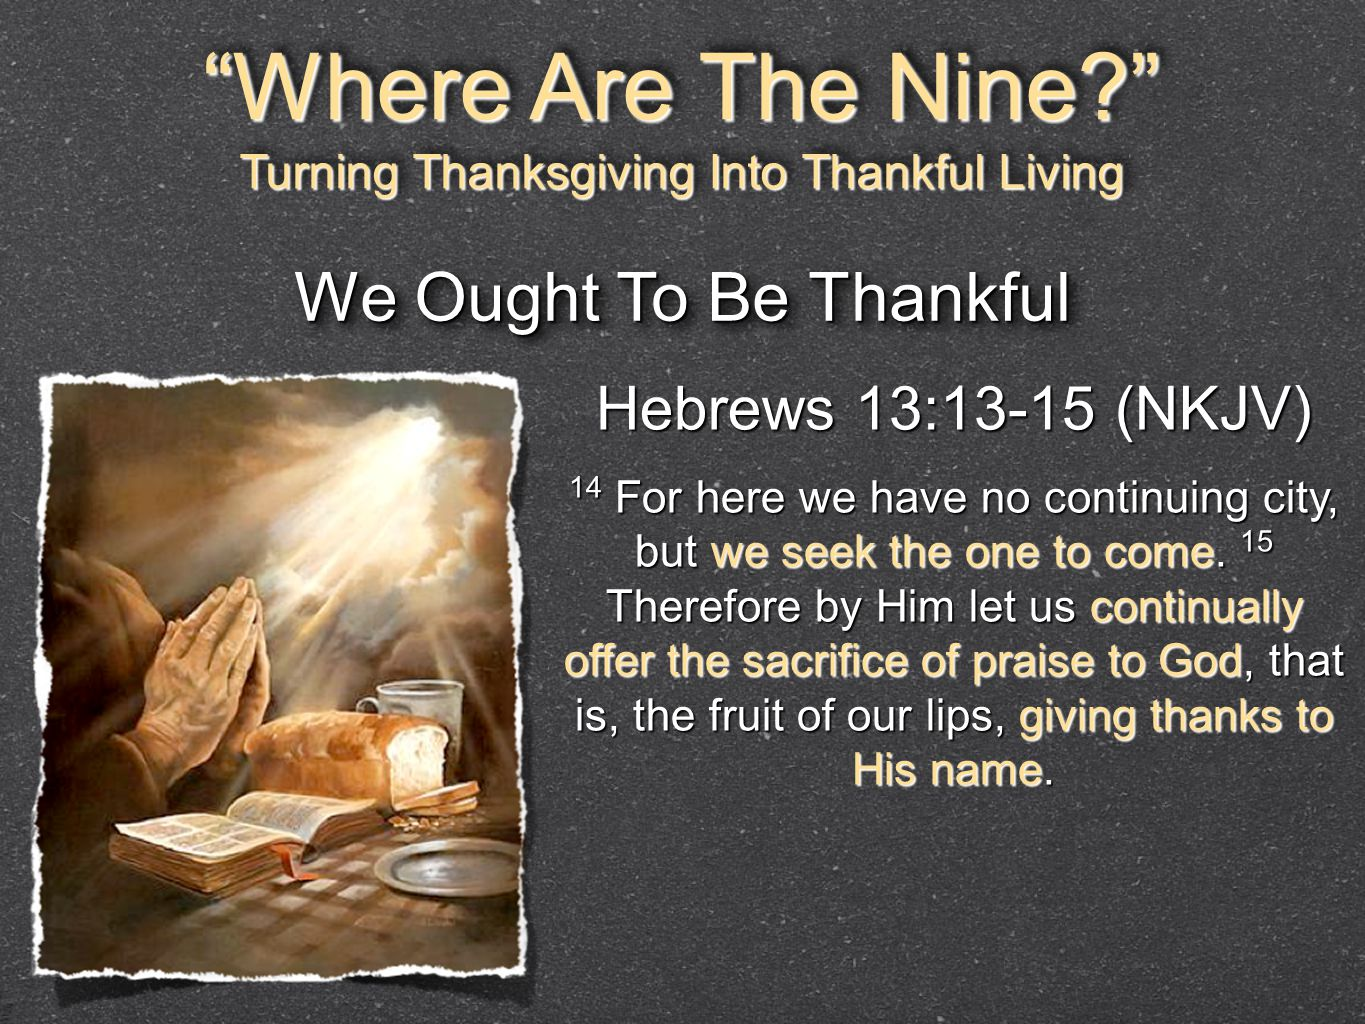 Hebrews 13:13-15 (NKJV) 14 For here we have no continuing city, but we seek the one to come. 15 Therefore by Him let us continually offer the sacrific